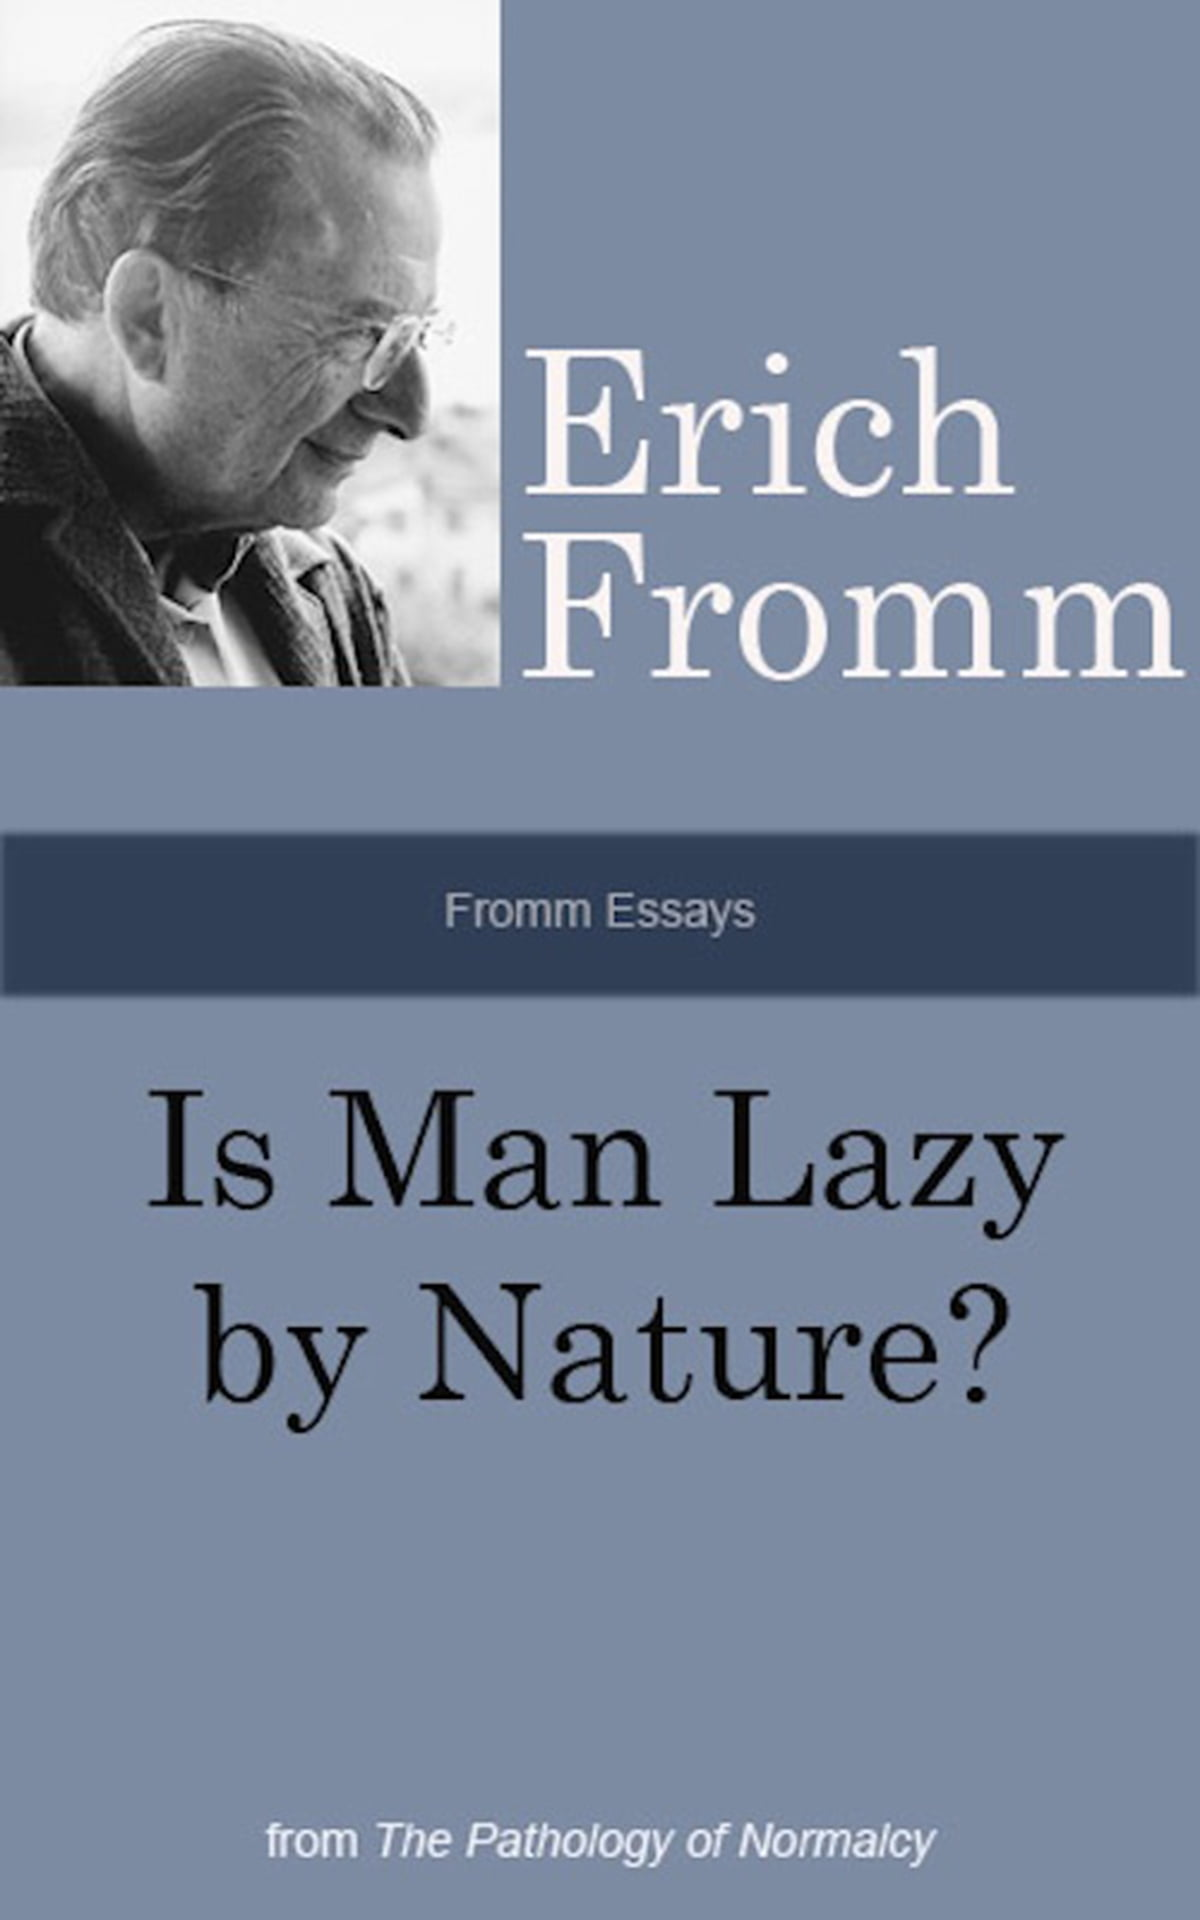 Fromm Essays Is Man Lazy By Nature Ebook By Erich Fromm